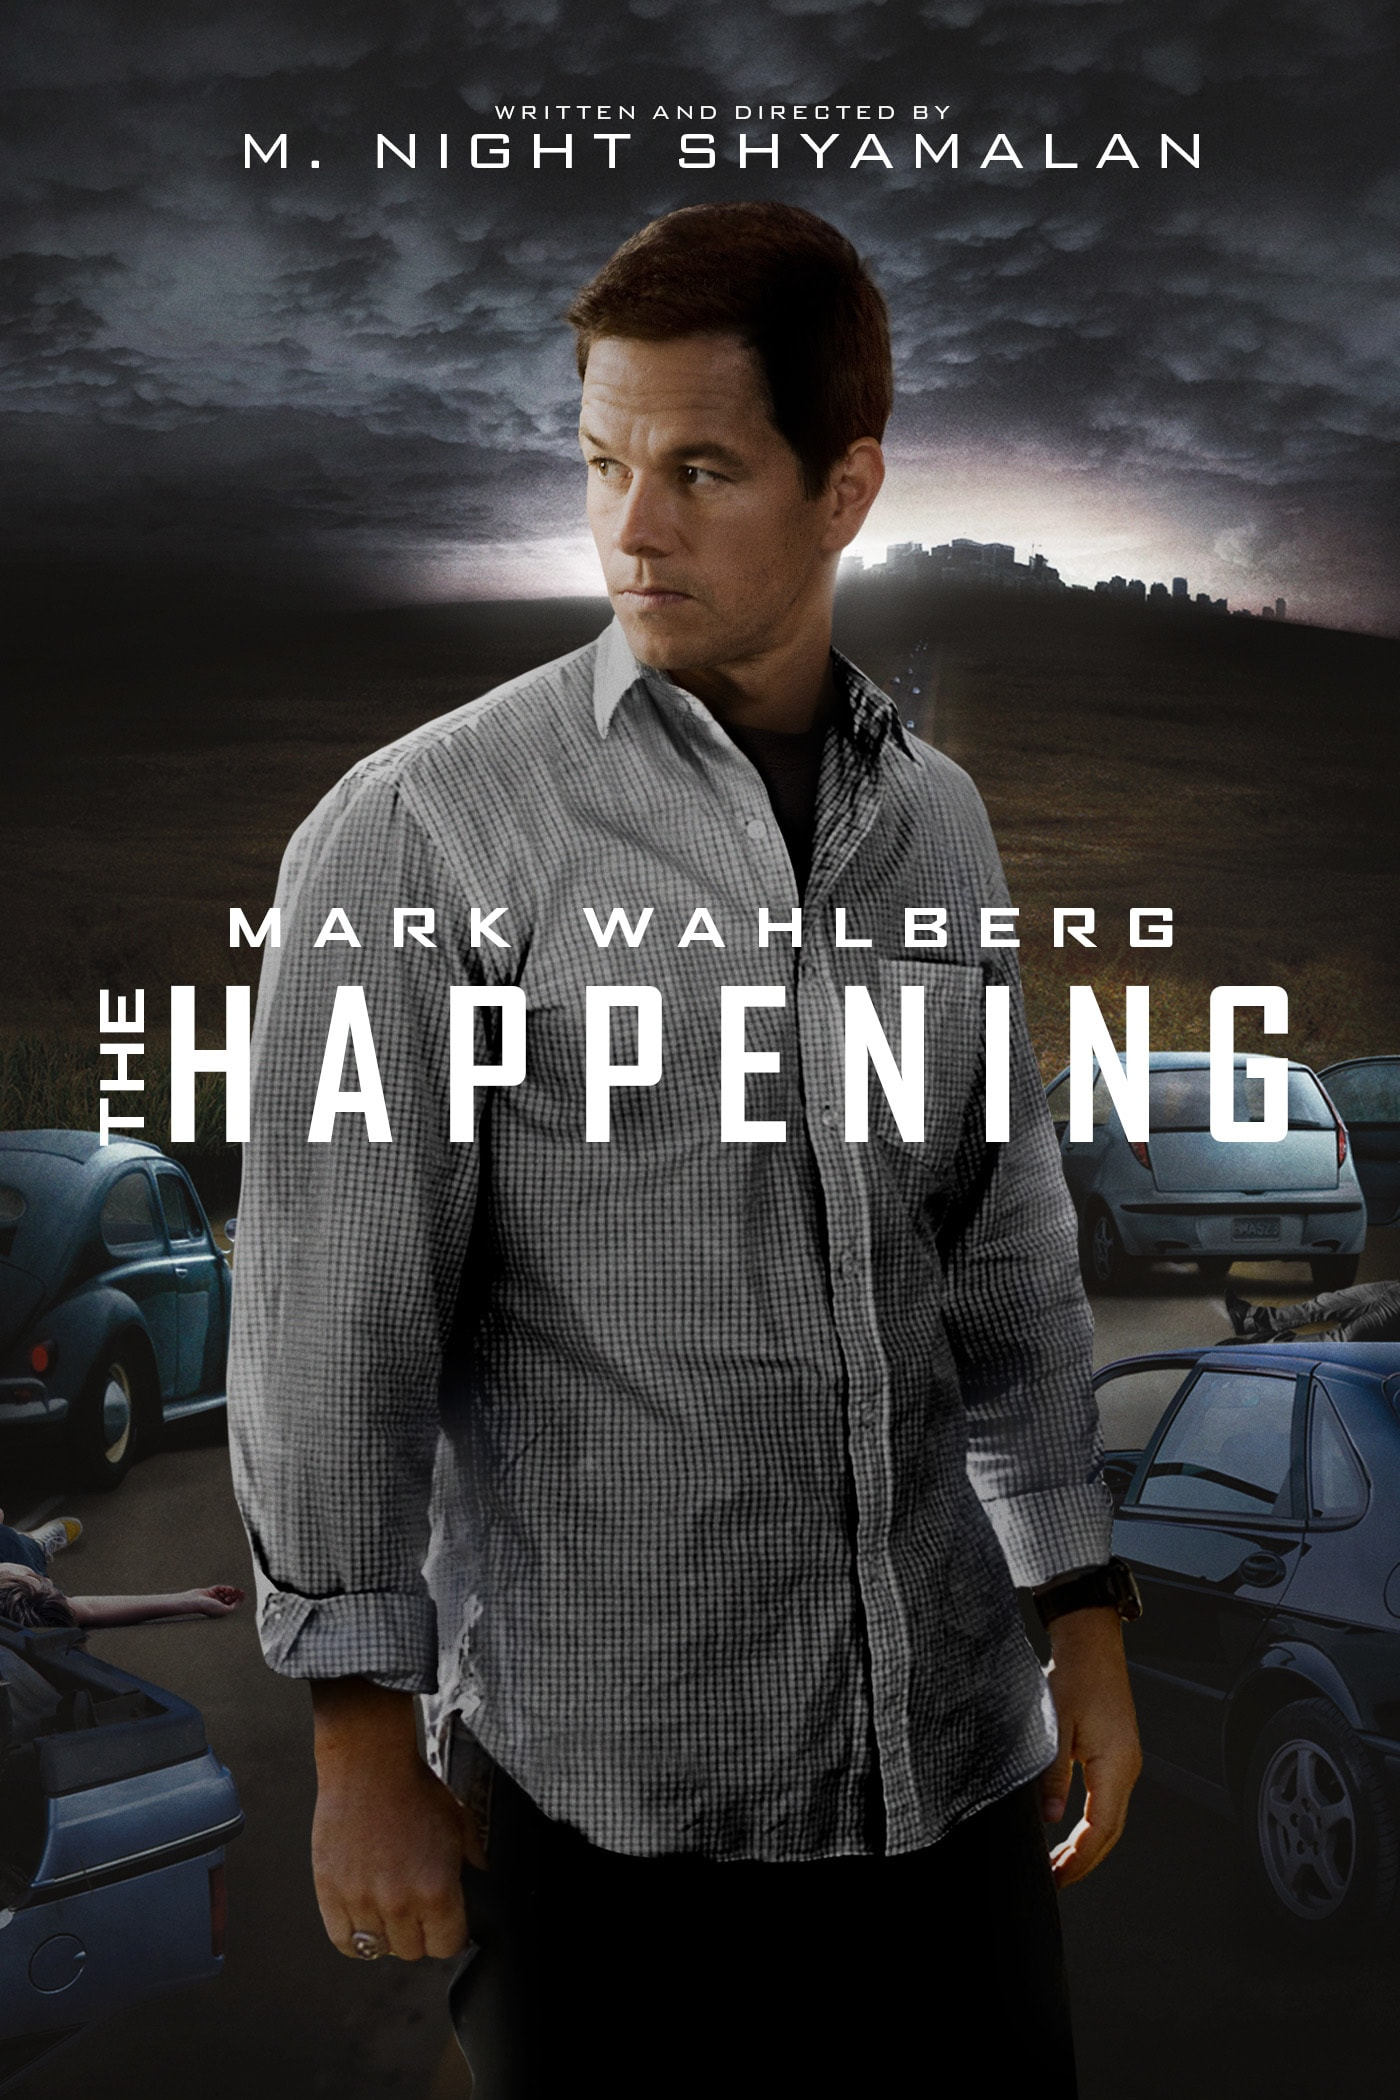 The Happening Movie Poster, Image of Mark Wahlberg posing in front of abandoned cars; Written and Directed By M. Night Shayamalan